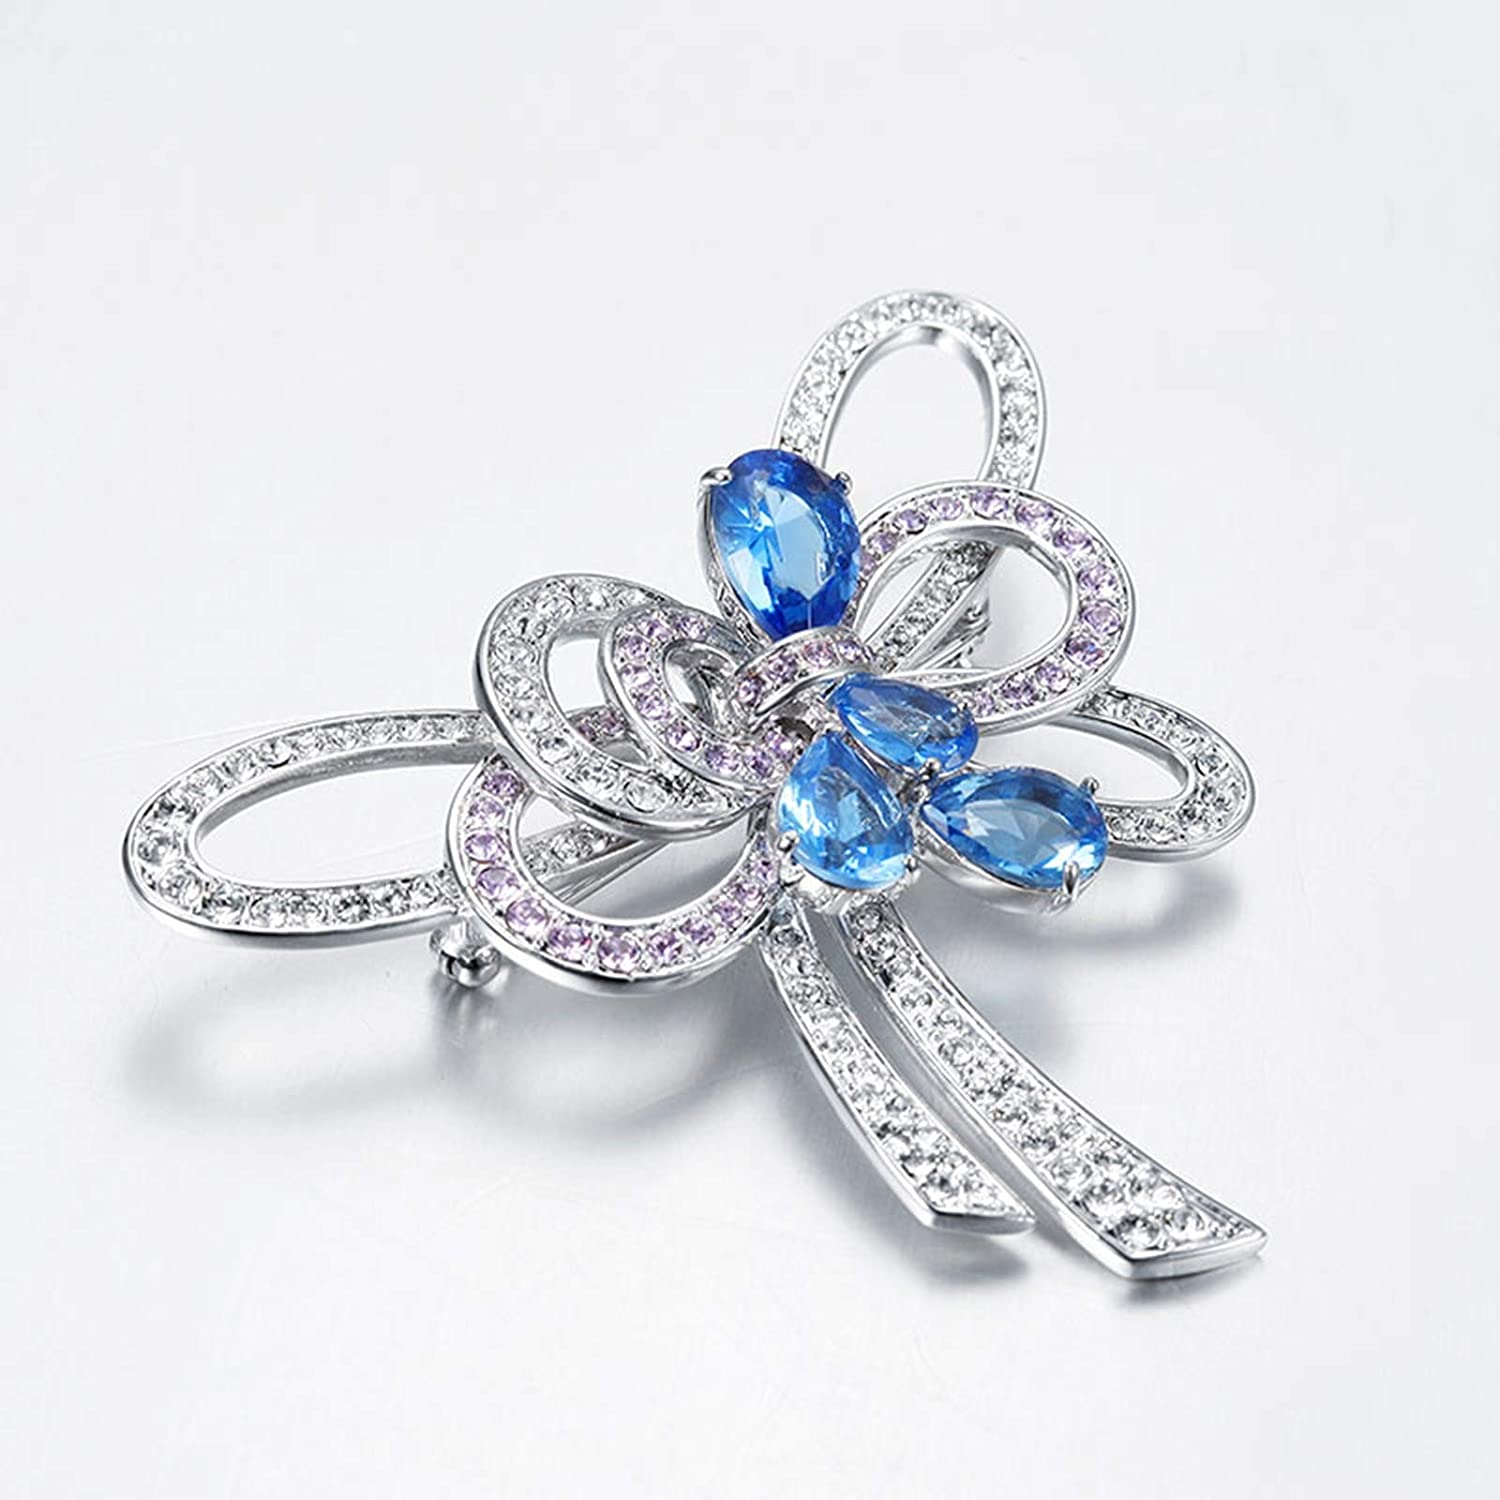 Aokarry Women Brooch Silver Plated Hollow Bowknot with CZ Brooch Silver